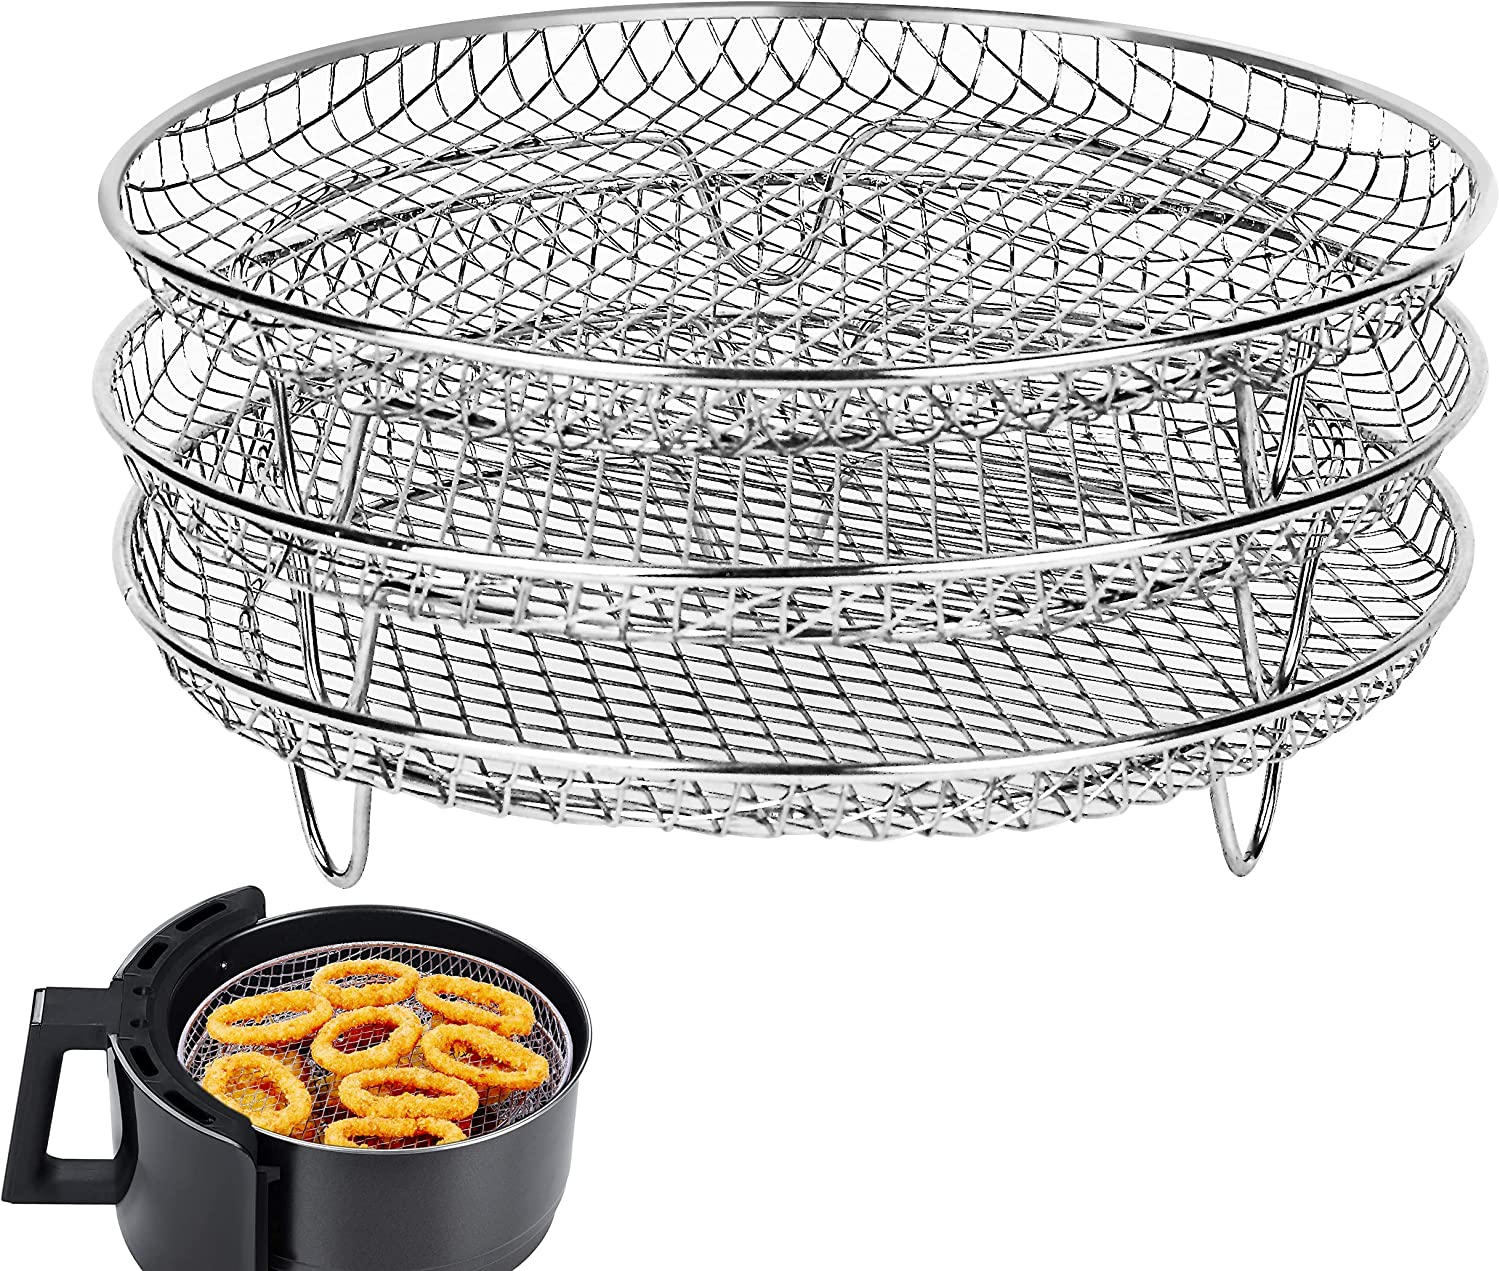 Air Fryer Rack for Gowise Ninjia Phillips Cozyna Airfryer,Three Stackable Dehydrator Racks Fit all 4.2QT - 5.8QT Air fryer,Air Fryer Accessories